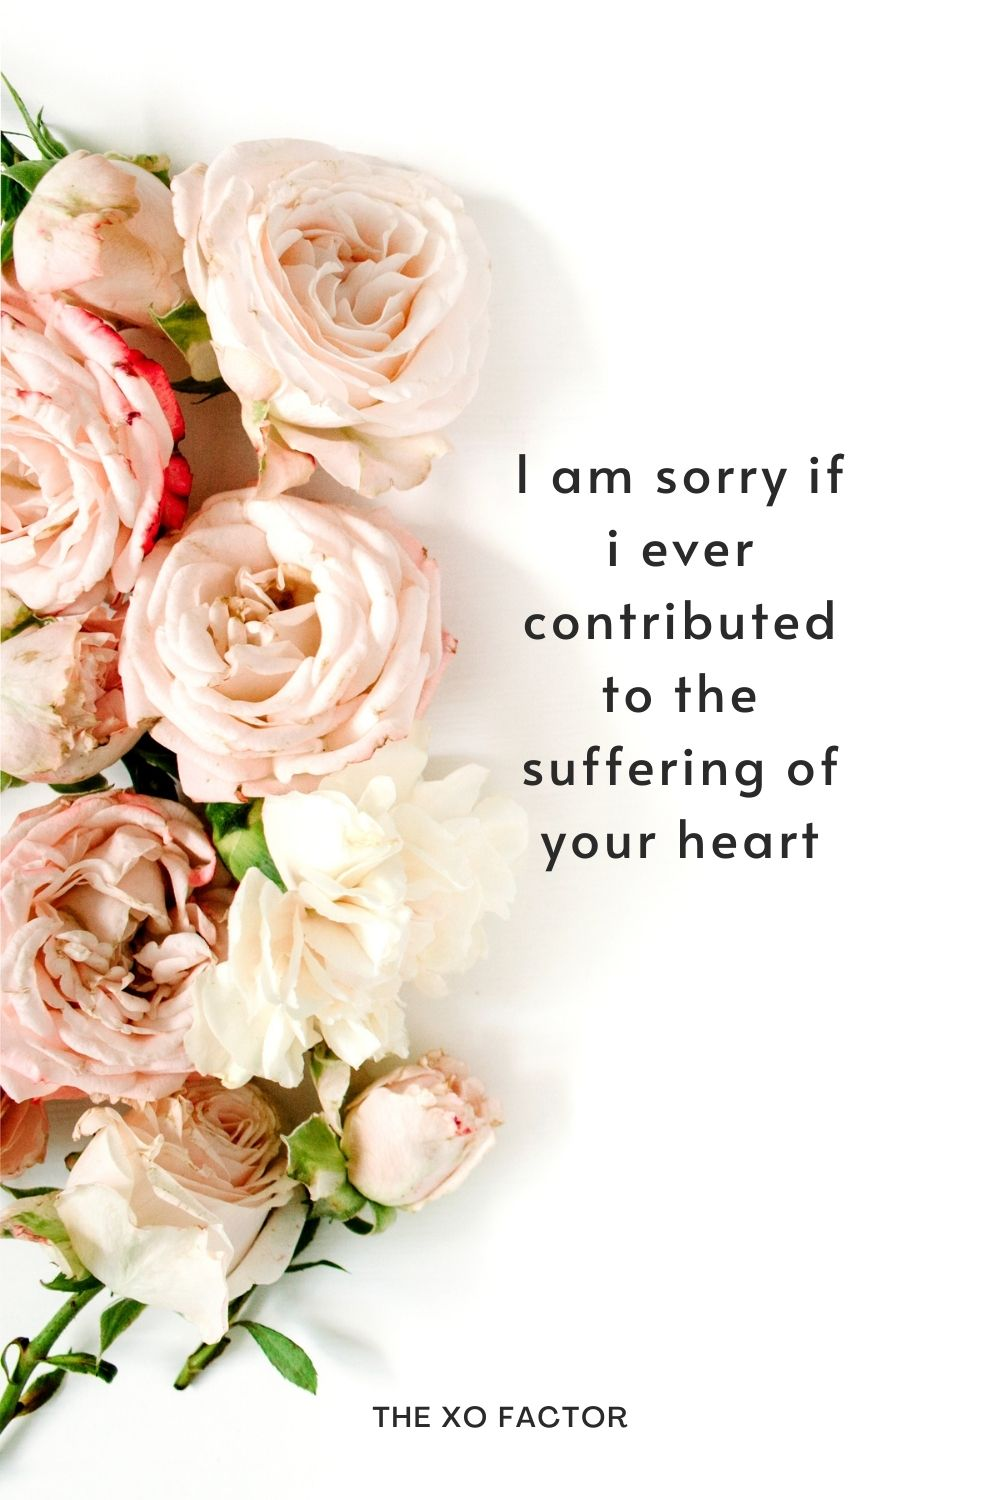 I am sorry if i ever contributed to the suffering of your heart.